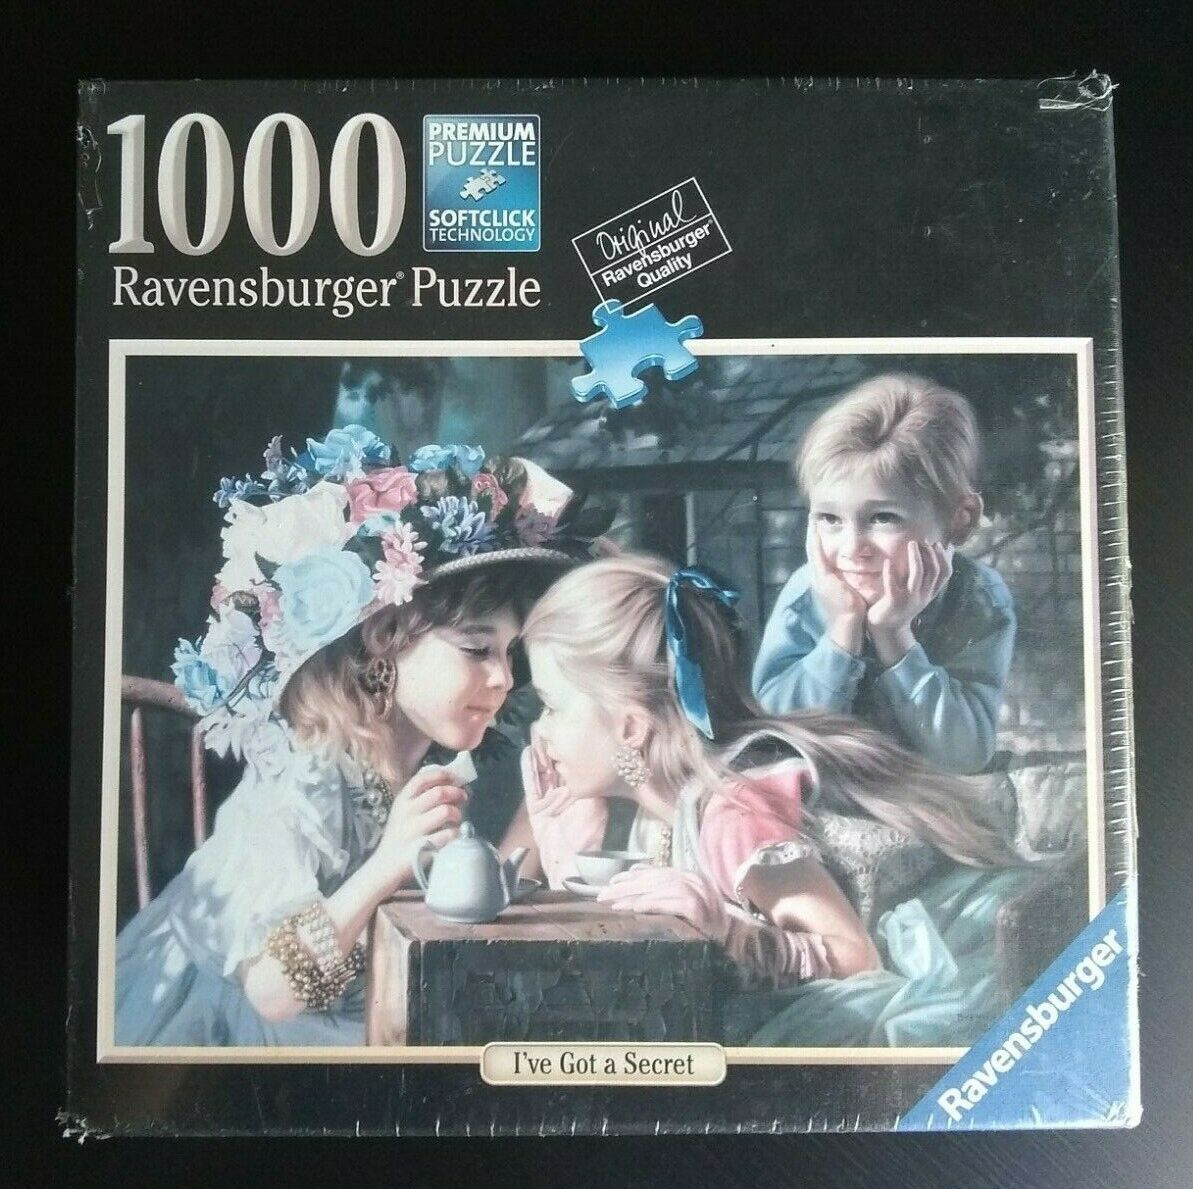 NEW Sealed Ravensburger Puzzle I Have Got A Secret Jigsaw 1000 Pcs No. 81 368